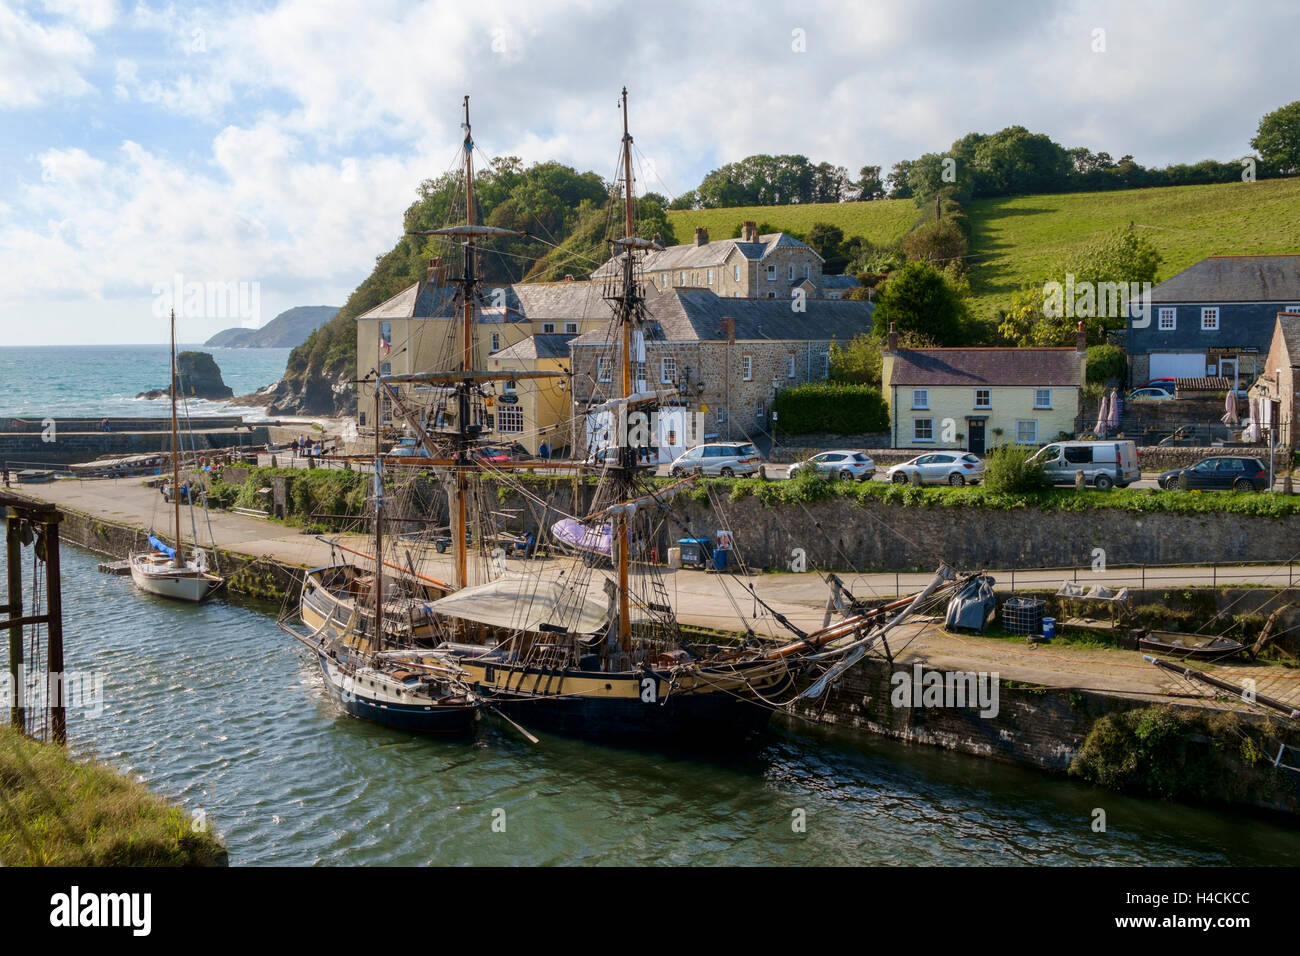 Charlestown harbour, Cornwall, UK with tall ships moored in the habour - Stock Image